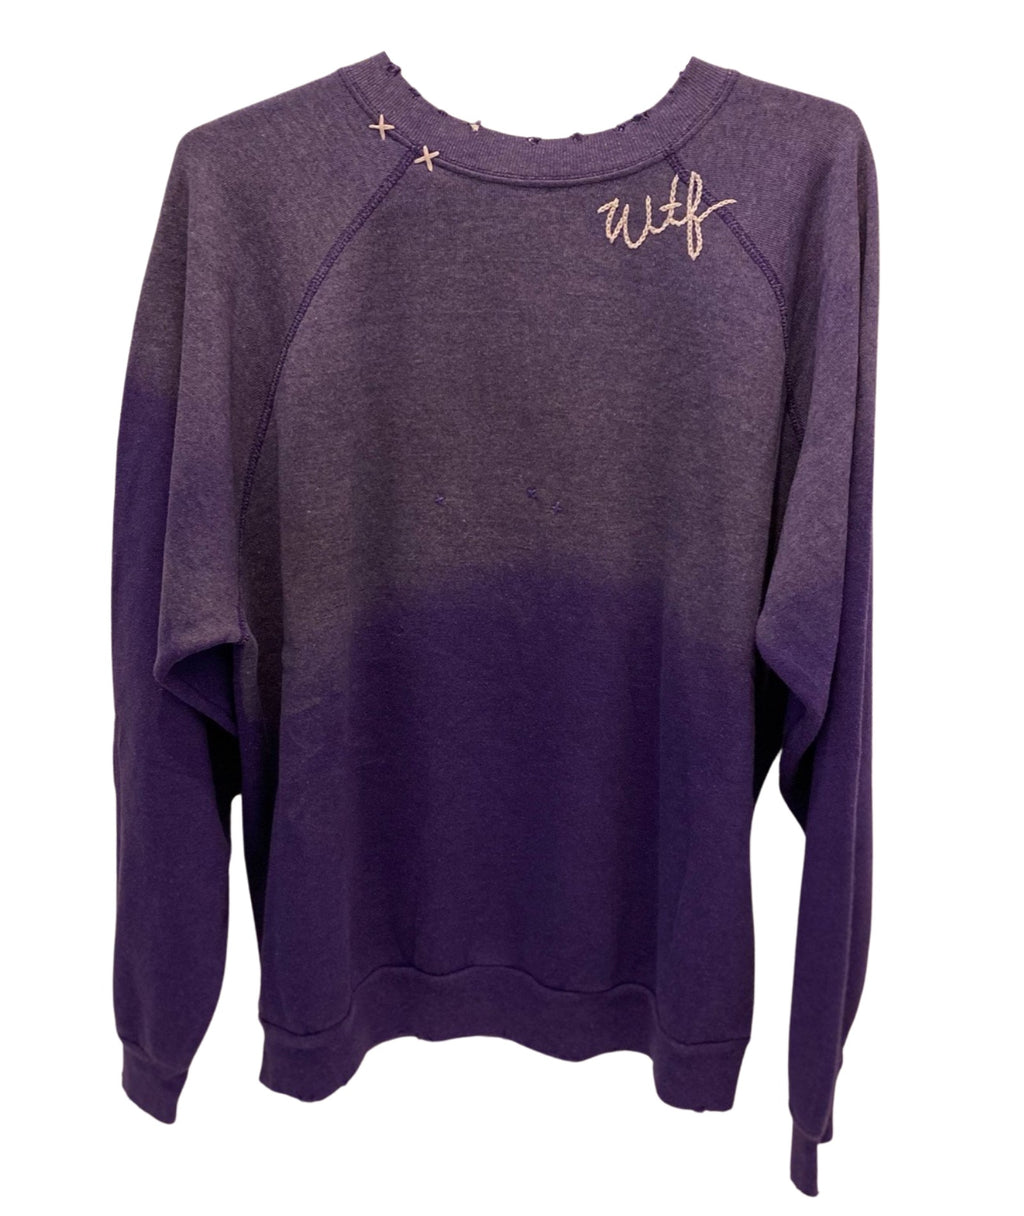 I Stole My Boyfriend's Shirt Women Cool WTF Sweatshirt Dark Purple